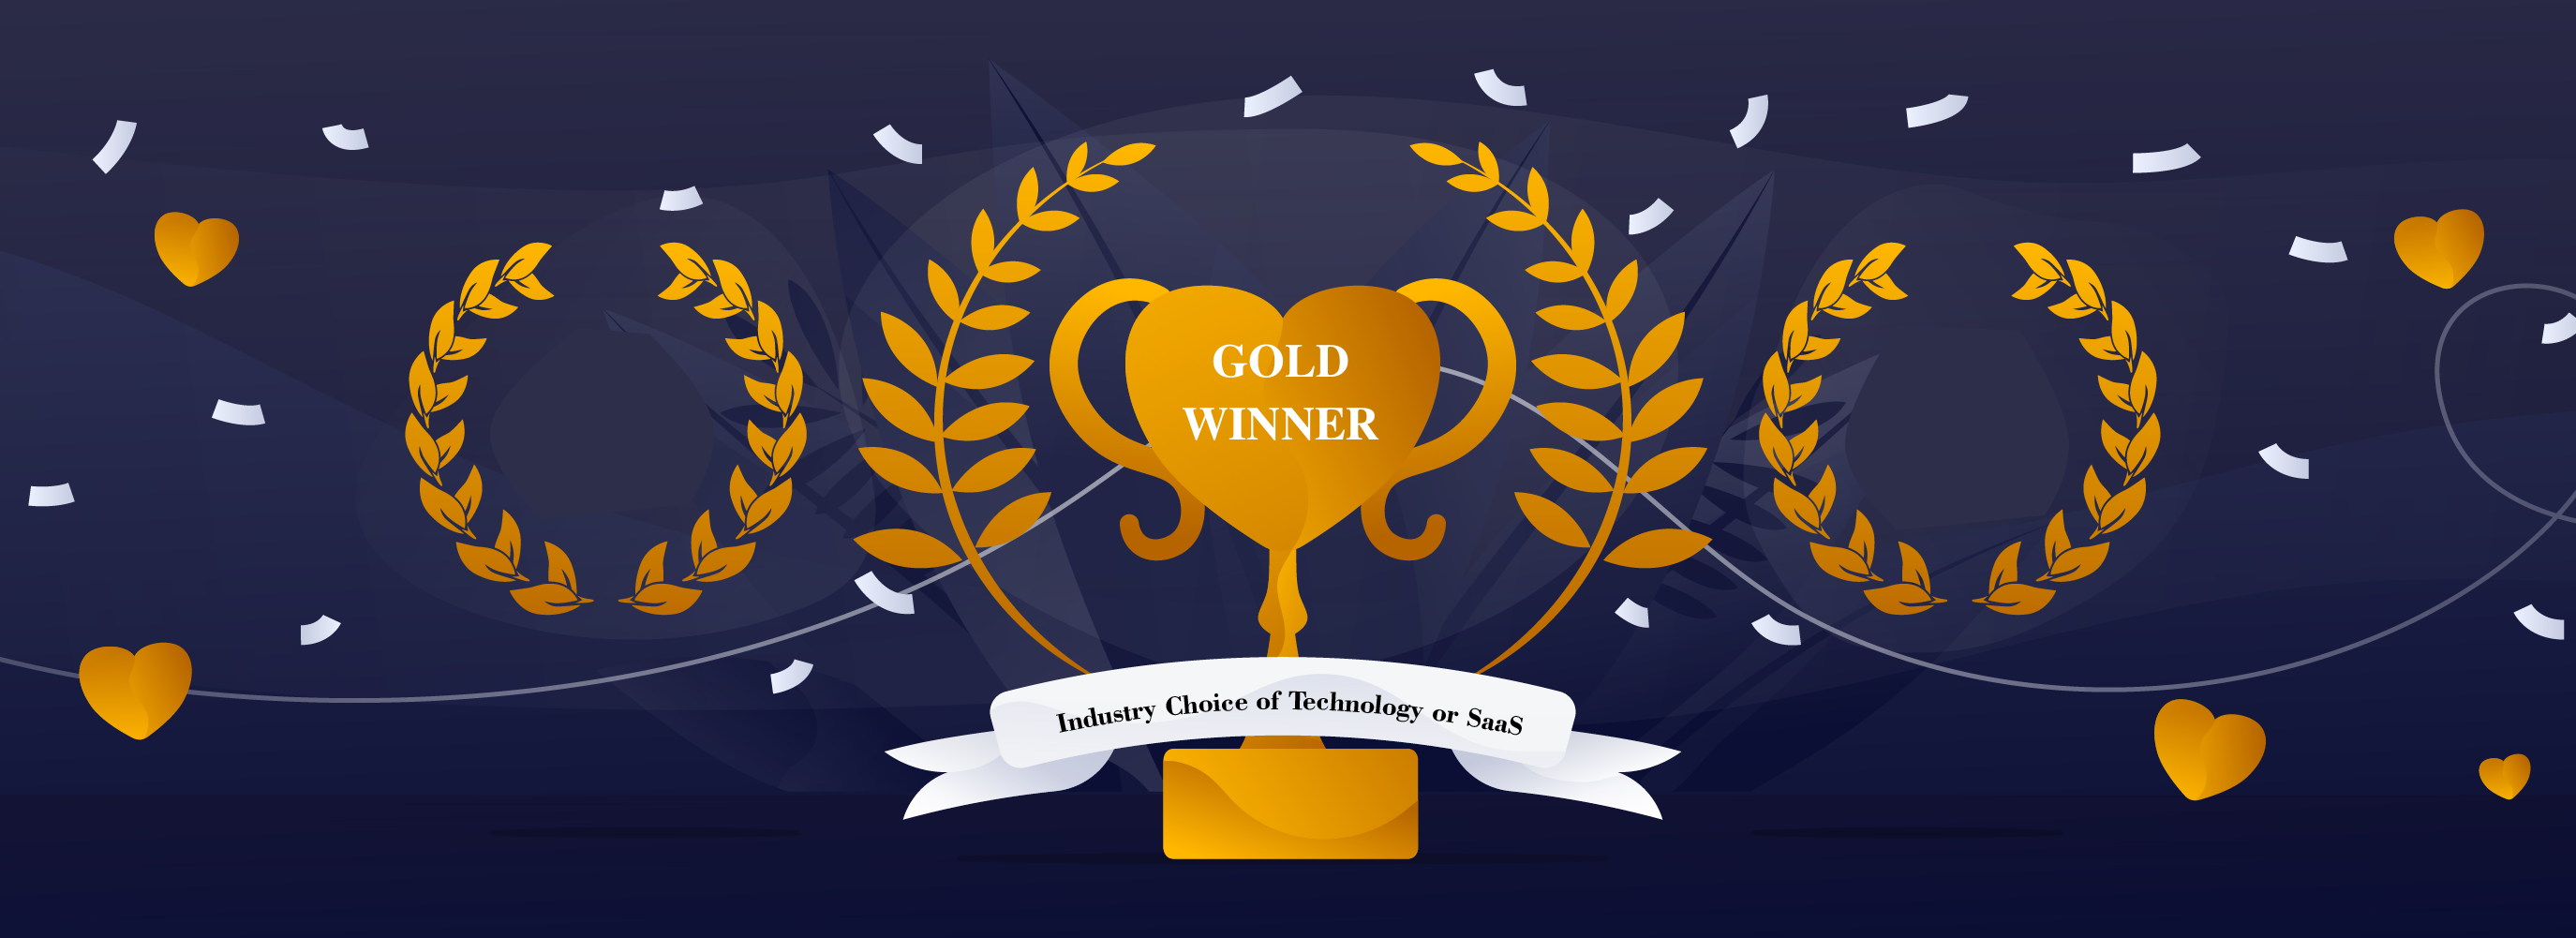 "Tagger Wins Gold Medal for ""Industry Choice"" Technology at The Influencer Marketing Awards Image"